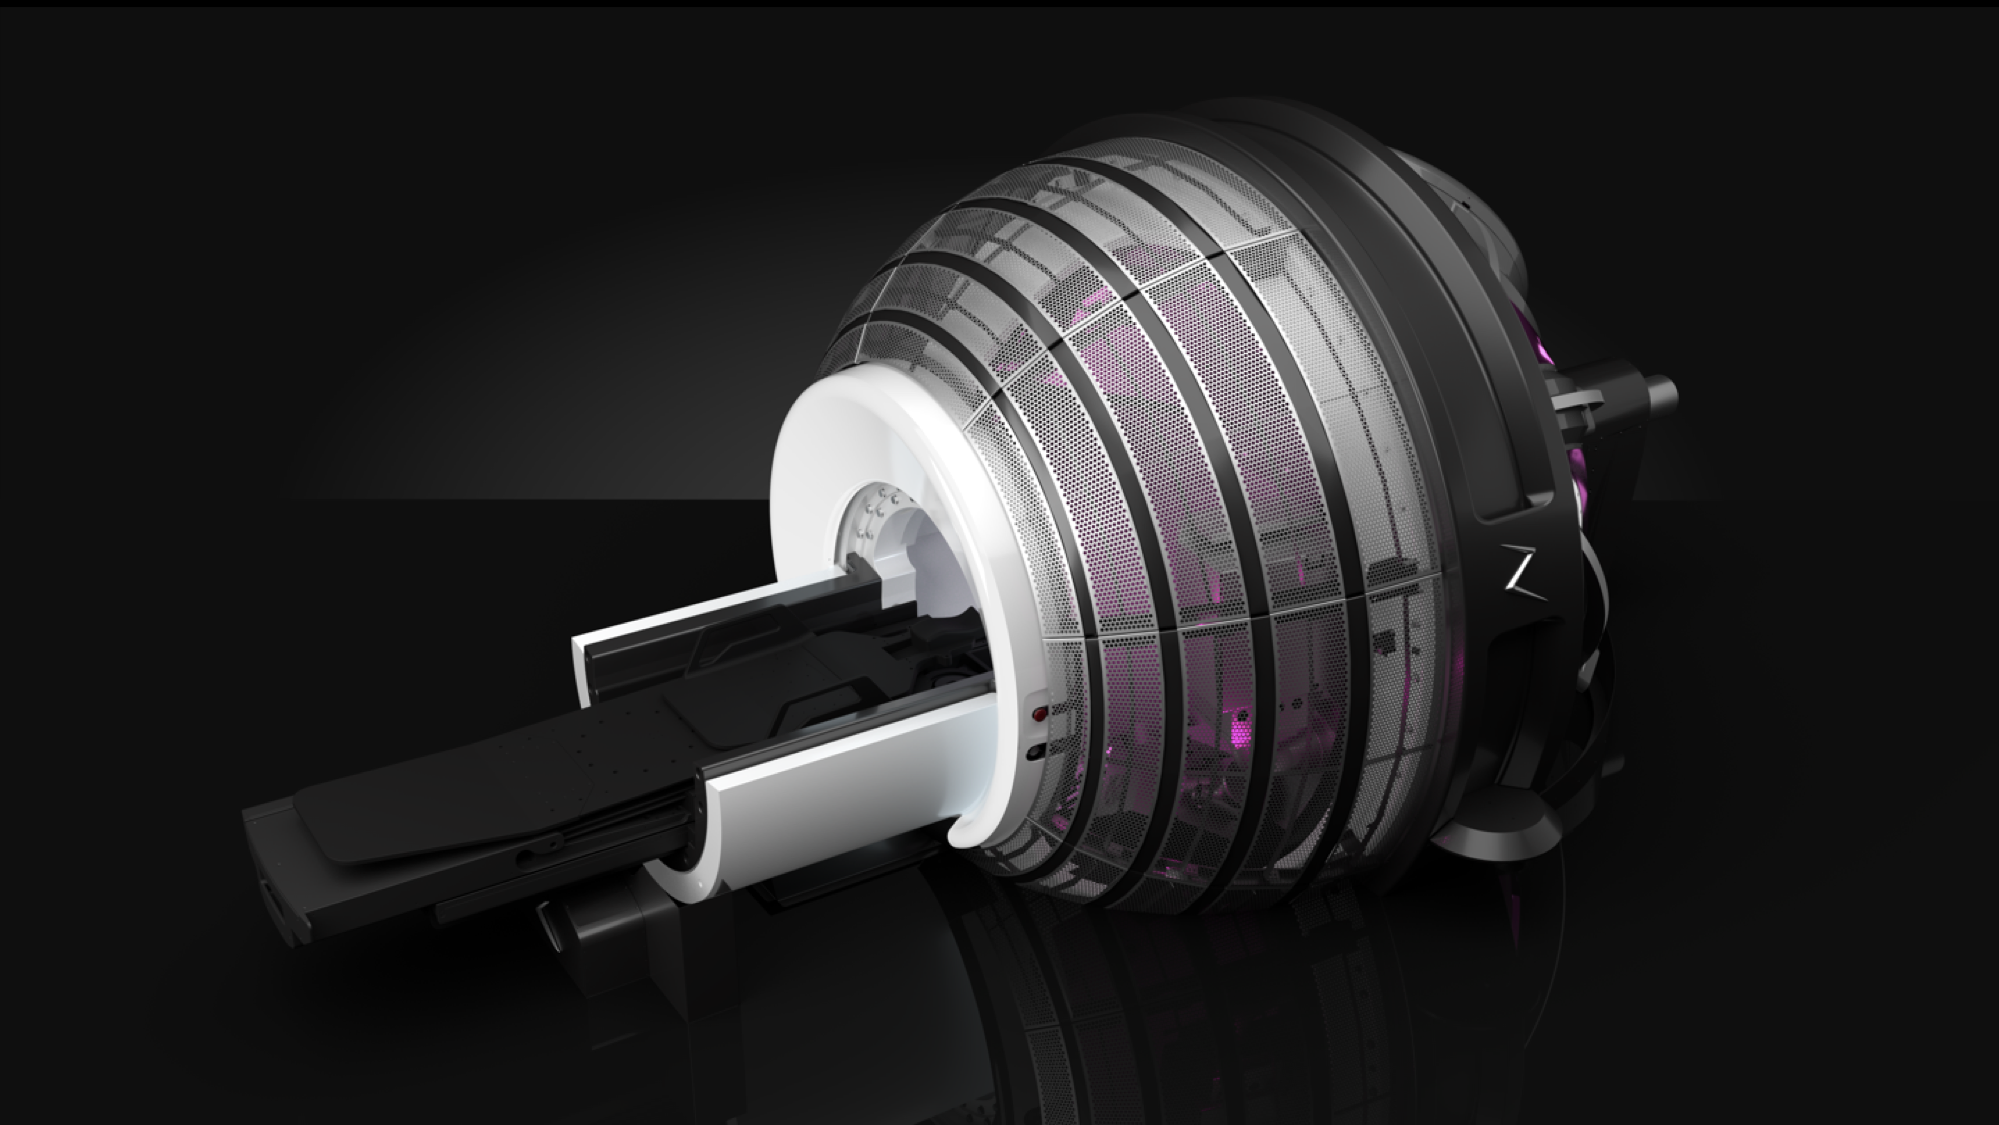 The client wanted a futuristic design to complement the